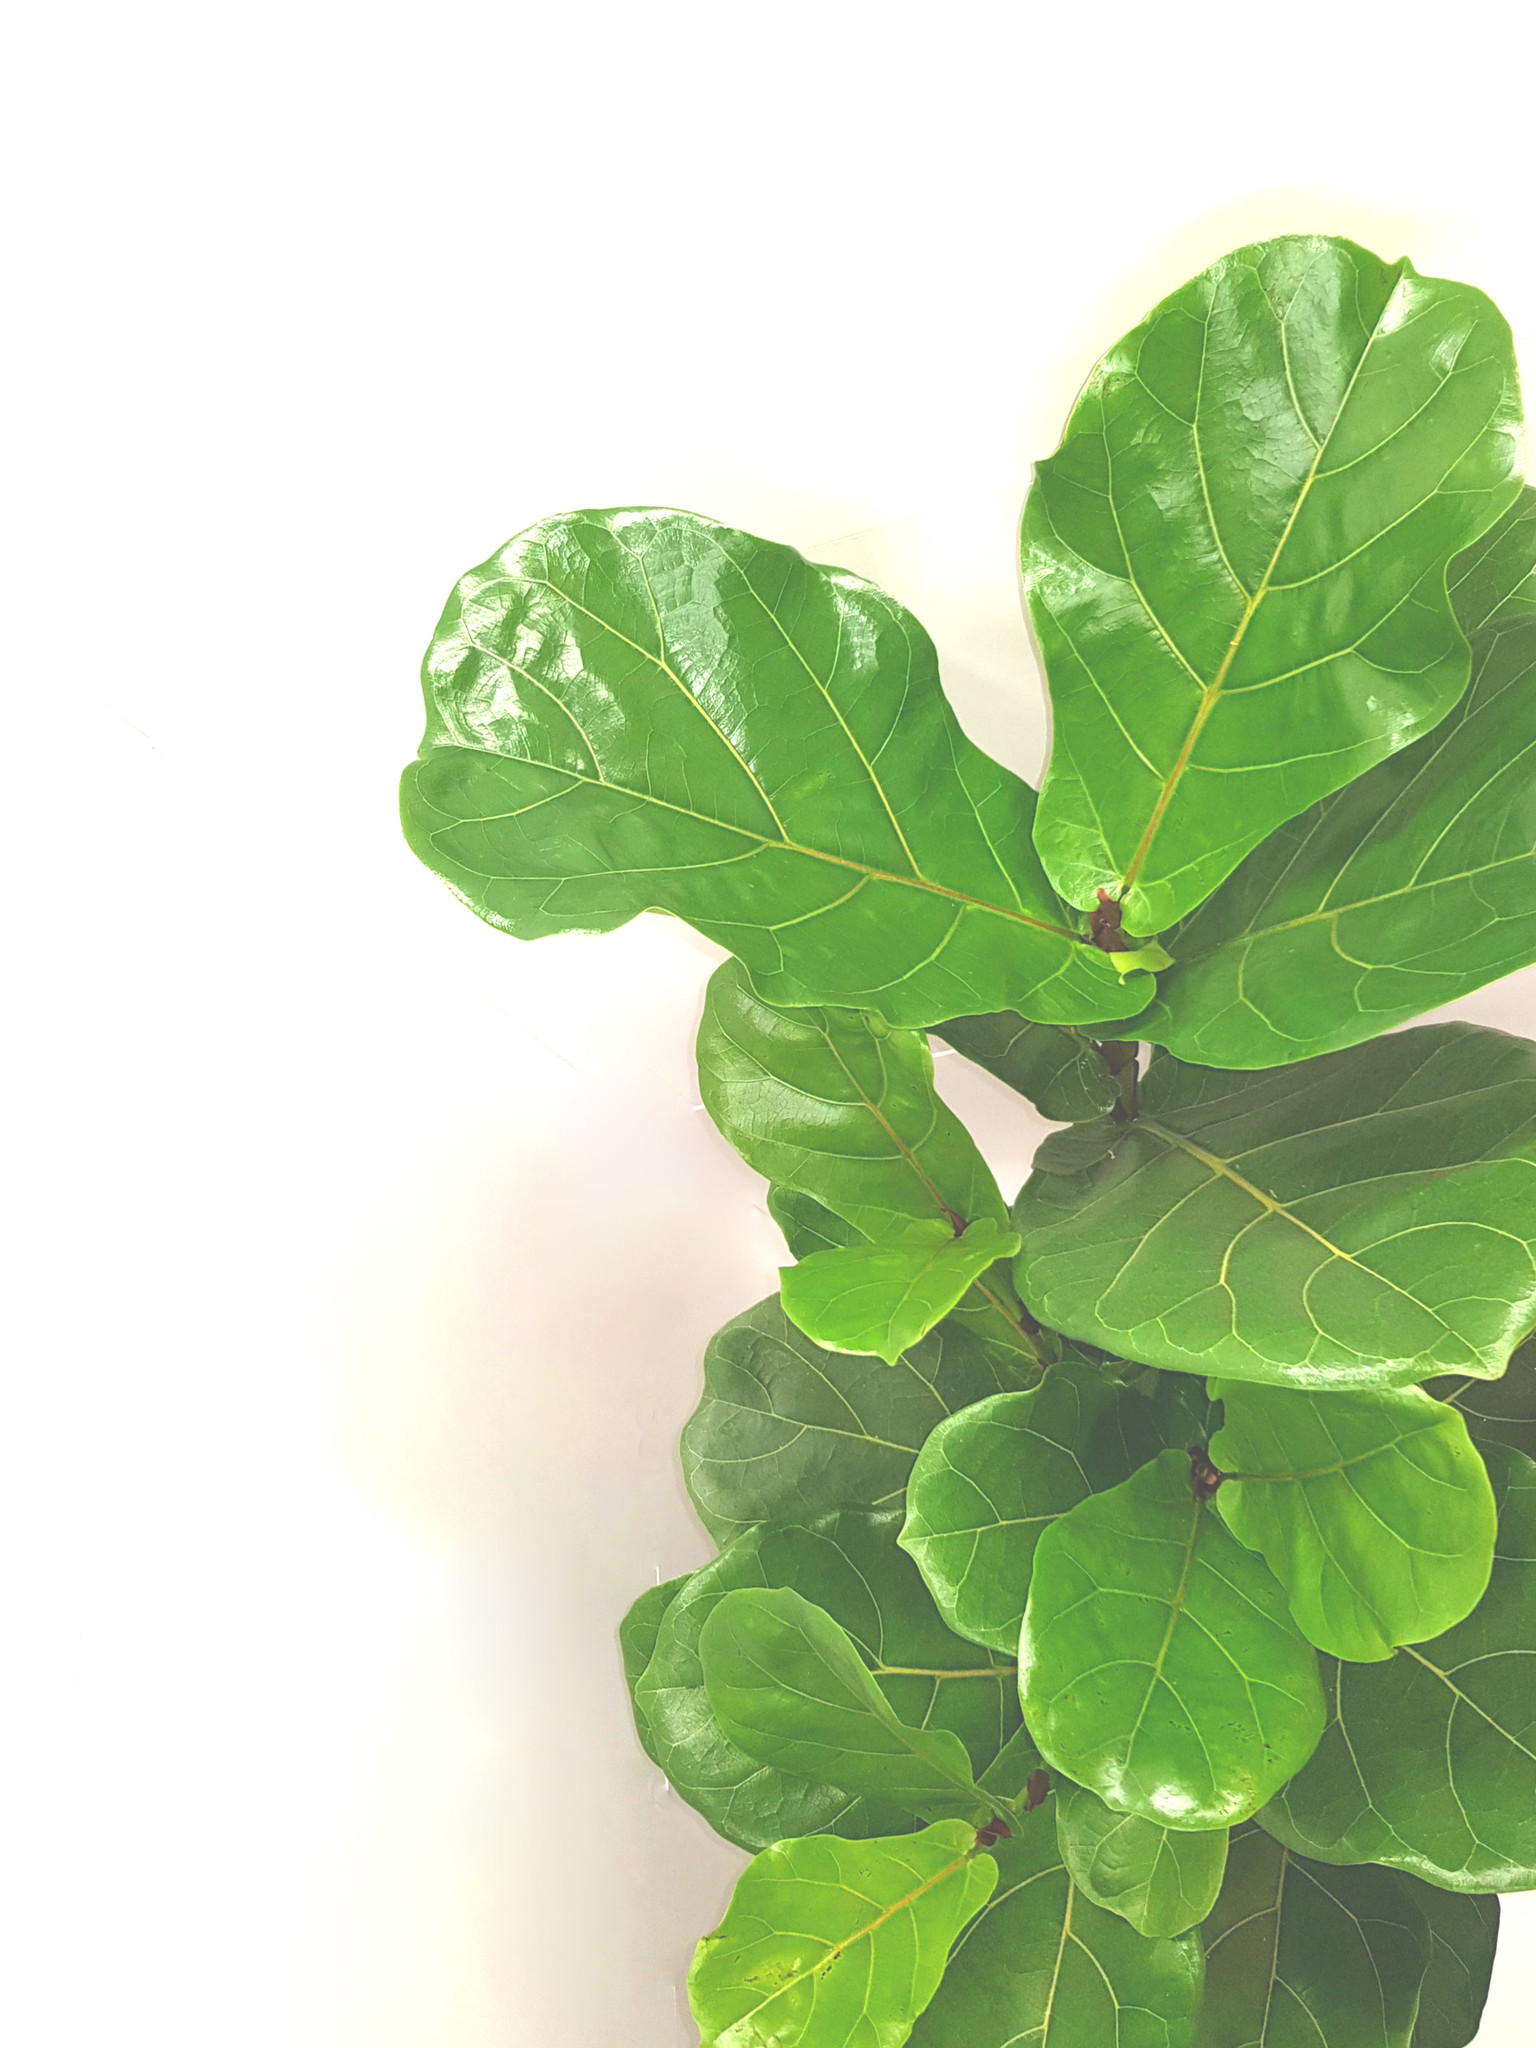 The leaves of the ficus lyrata